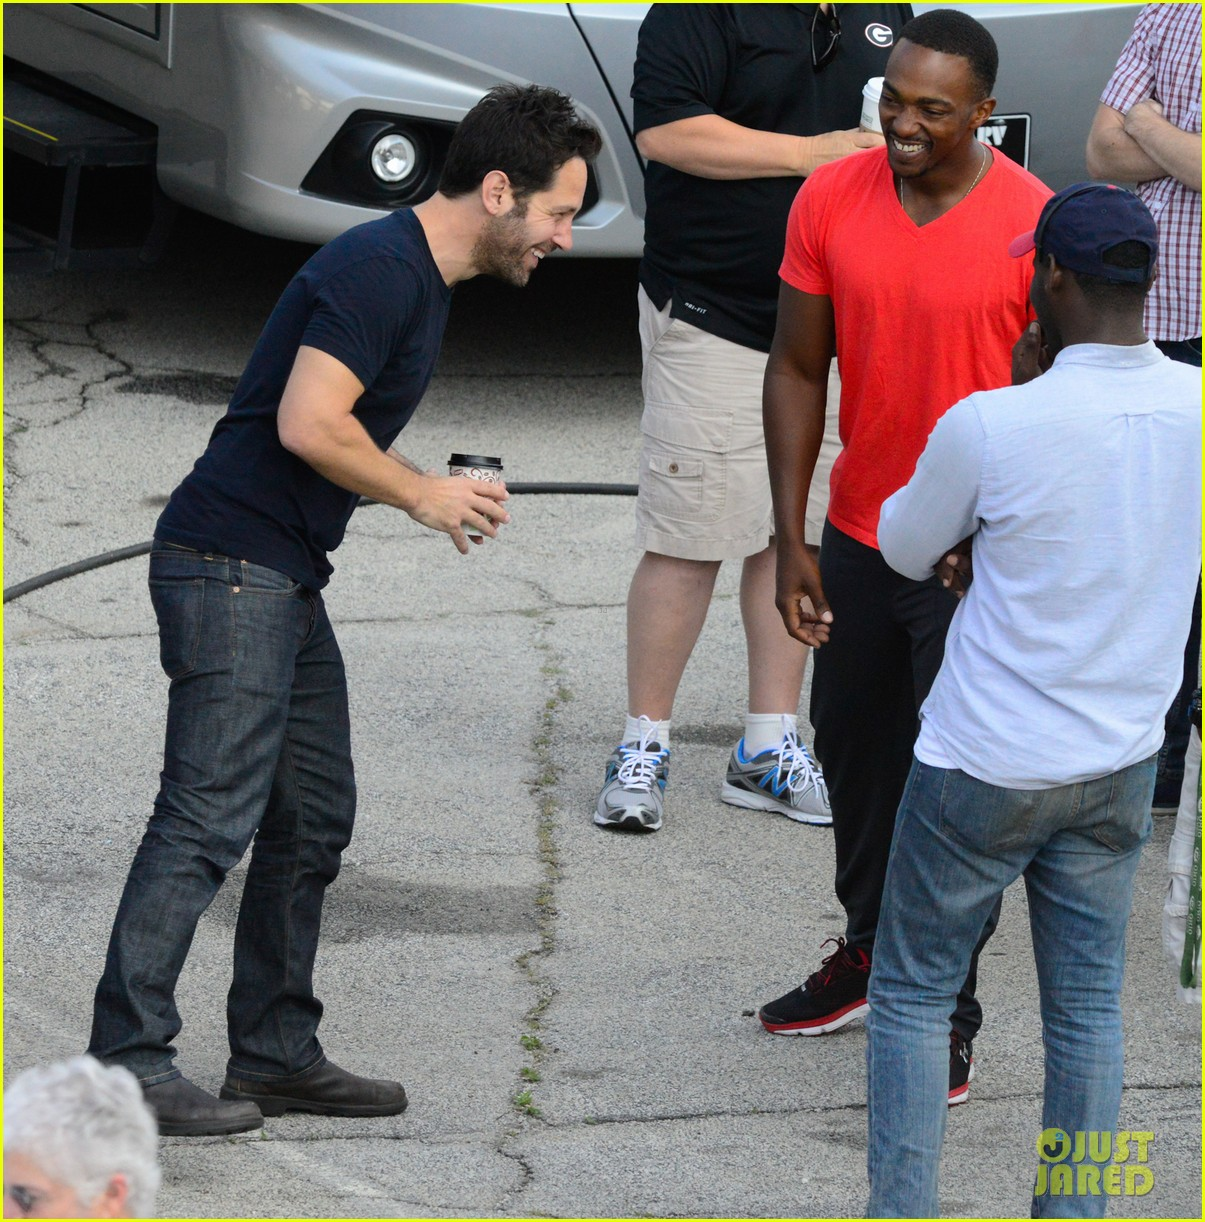 Franchise Marvel/Disney #3 Captain-america-civil-war-cast-had-great-time-on-set-40